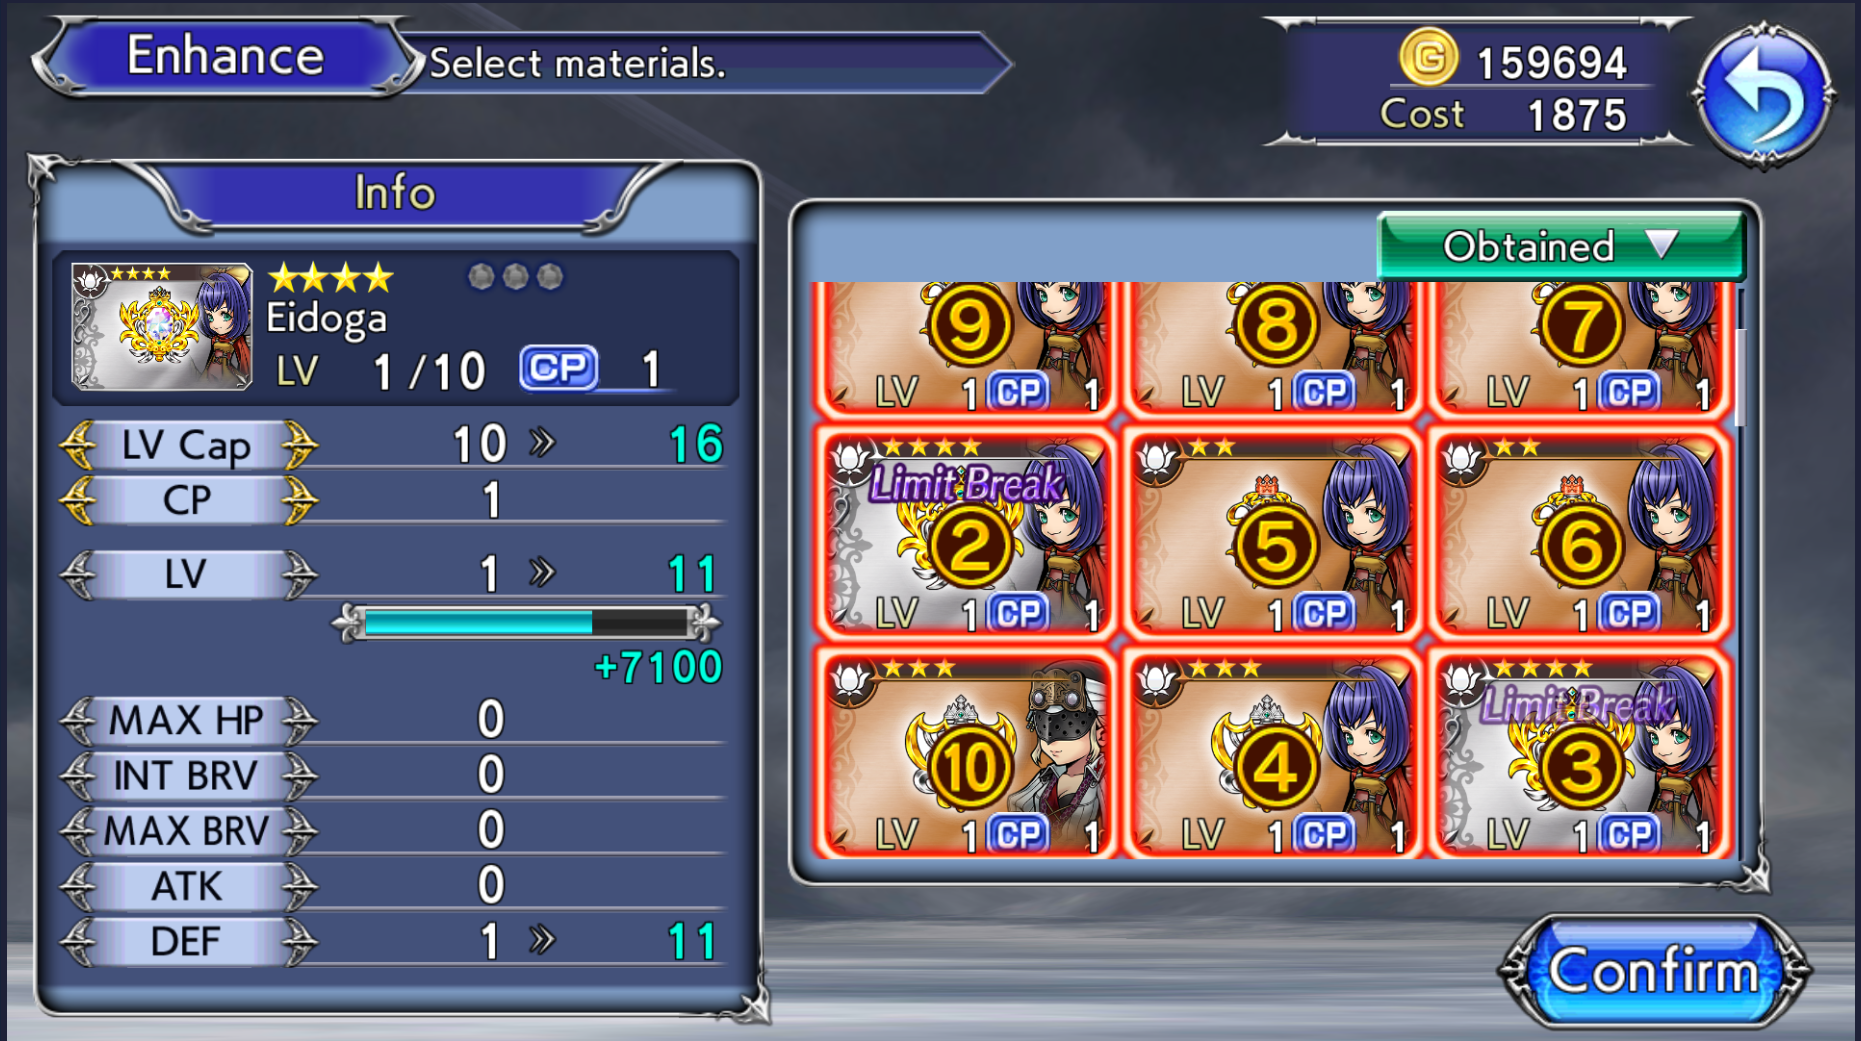 DFFOO Artifact Guide